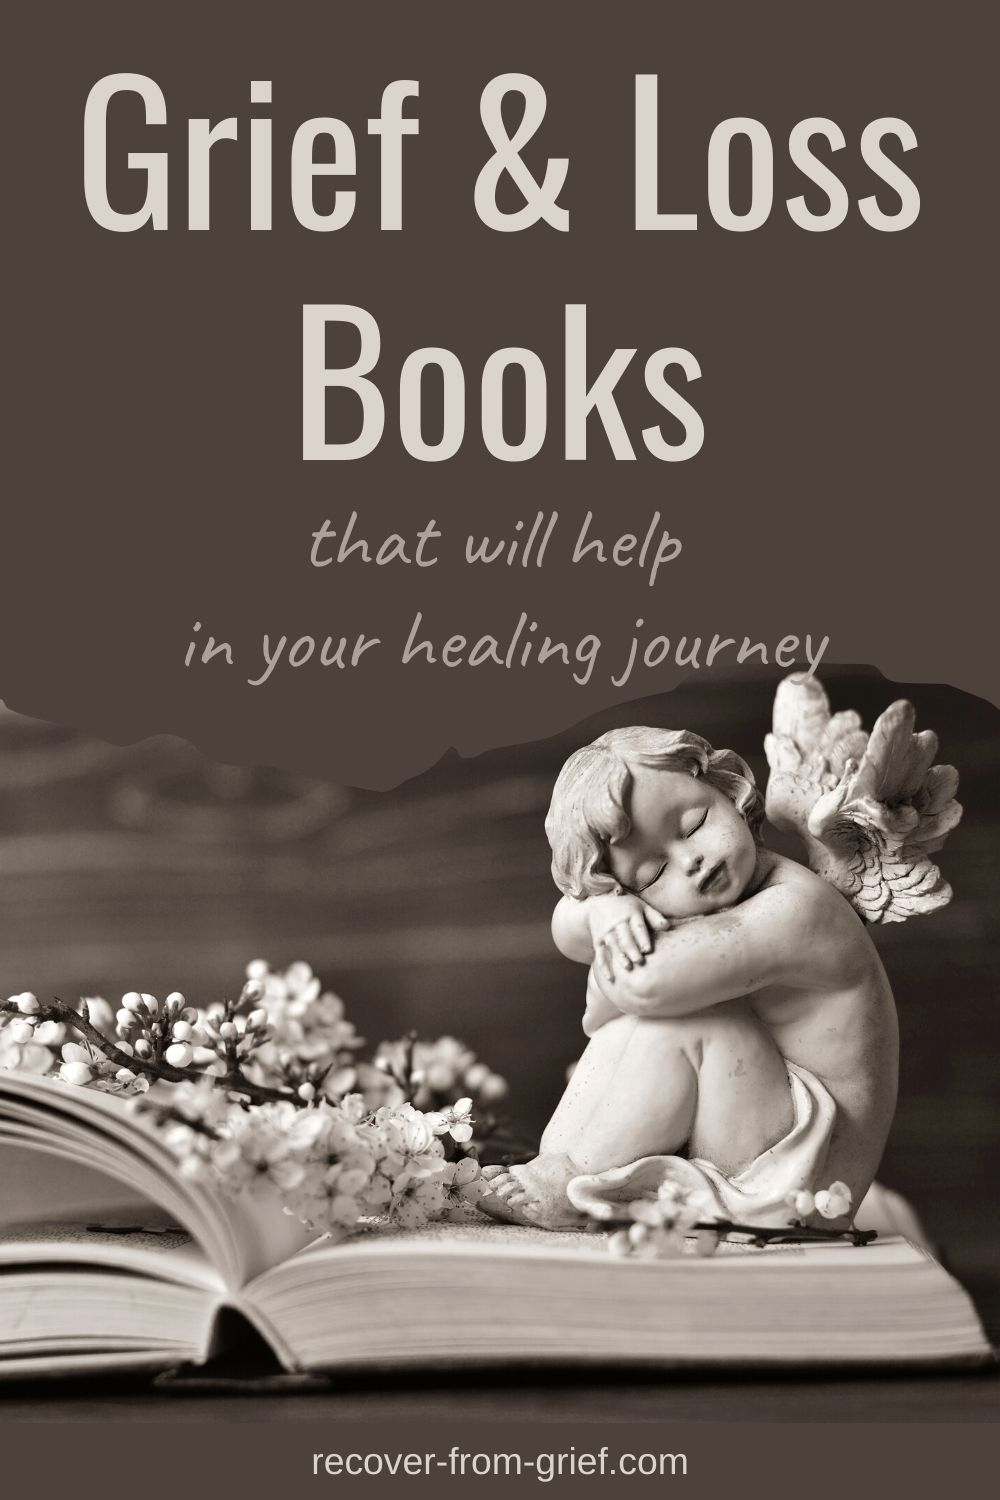 Grief and loss books that will help in your healing journey